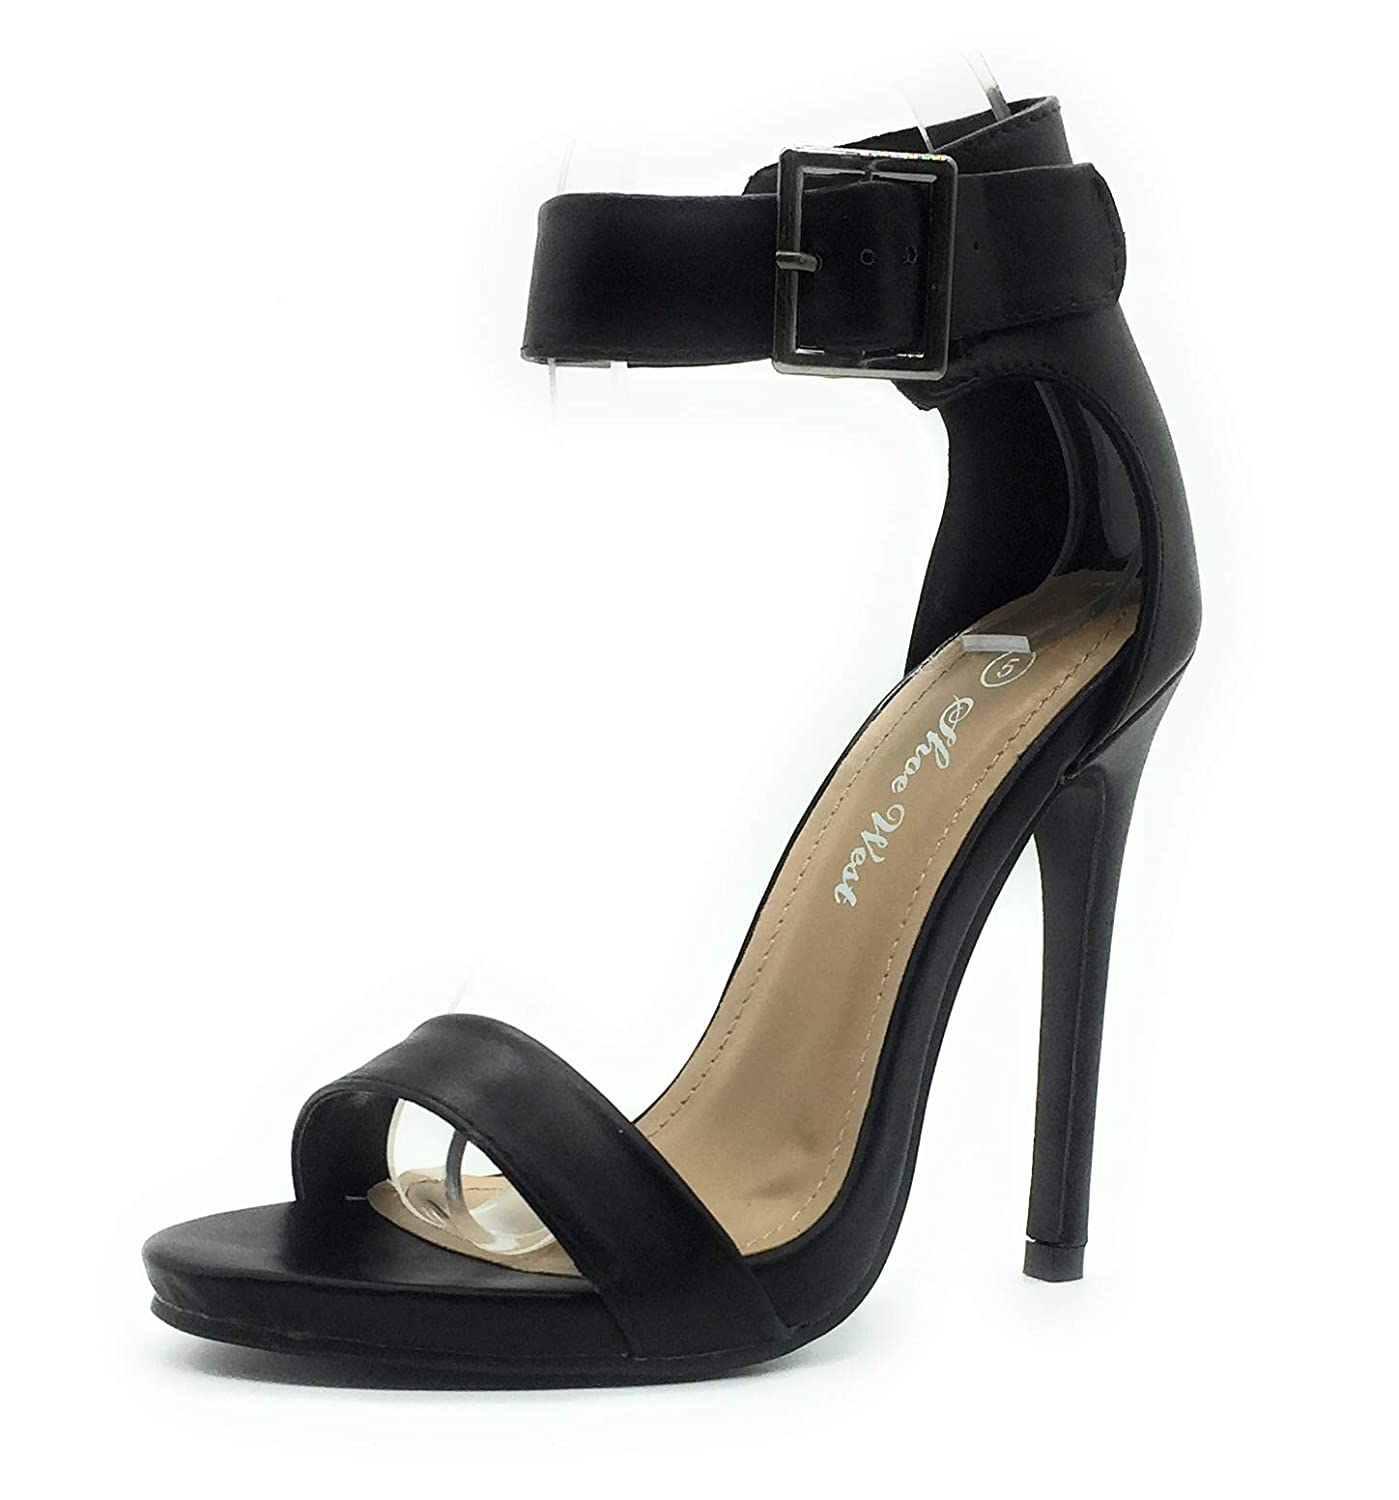 Black Pu Sexy Open Toe Pump shoes -Cross Strap Party Dress Platfoms Ankle Strap Dress High Heels Stilettos